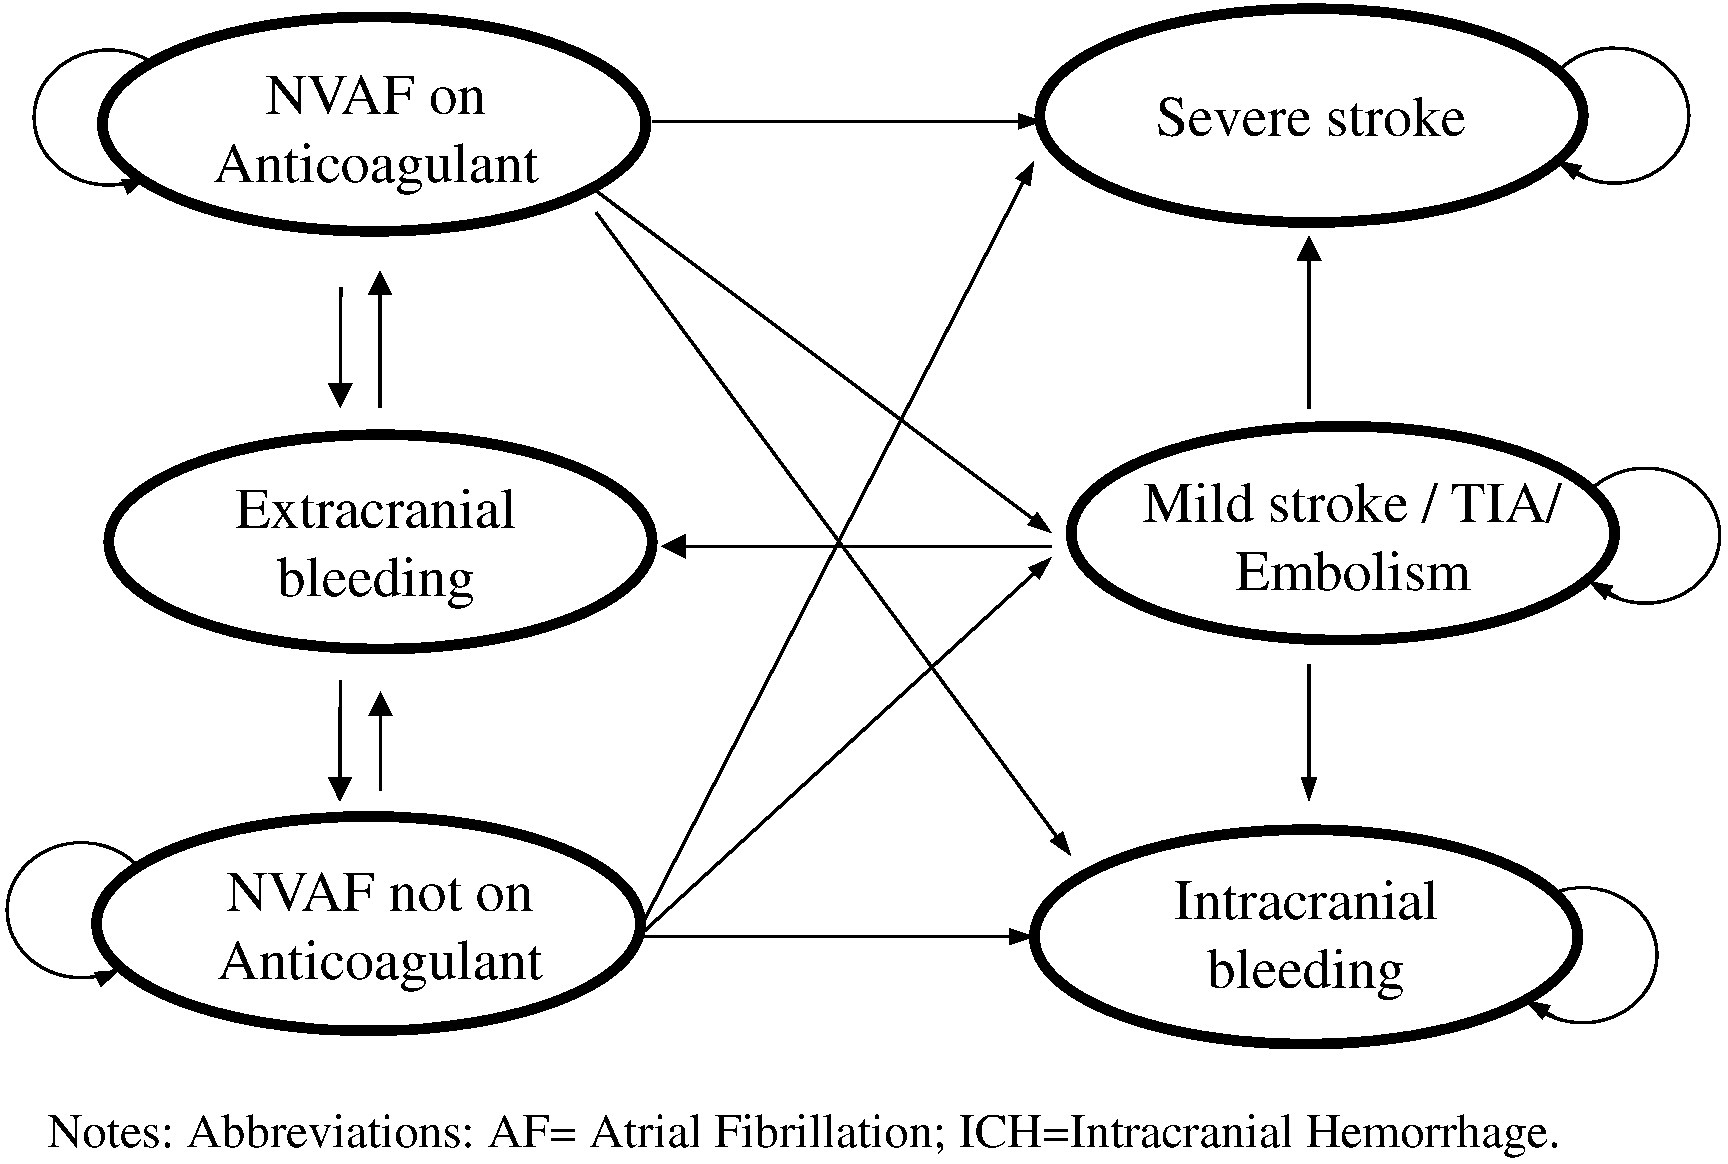 Cost Effectiveness Of Non Vitamin K Antagonist Oral Anticoagulants For Stroke Prevention In